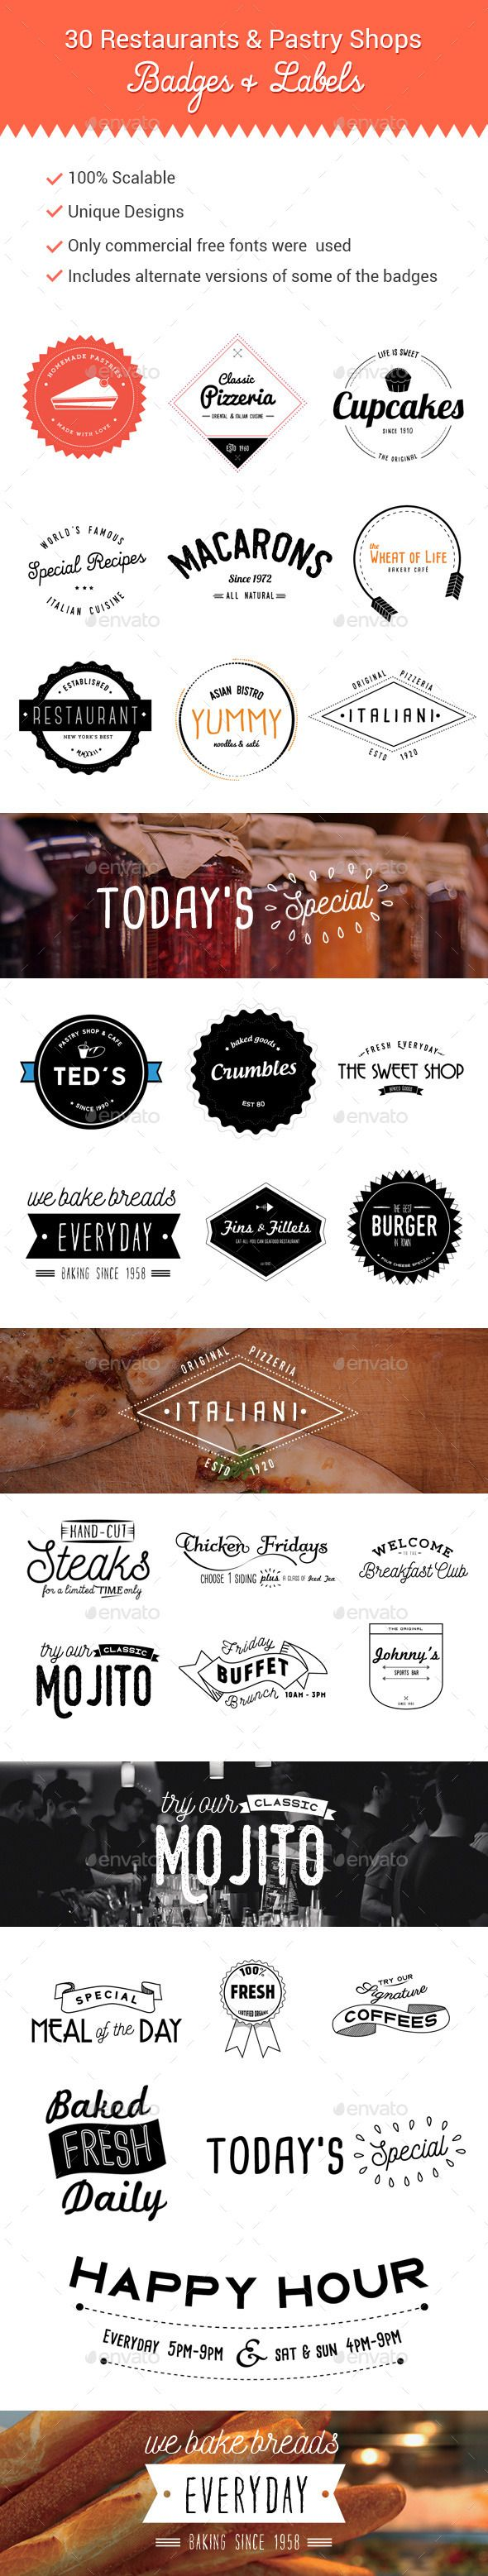 30 Restaurants and Pastry Shops Badges and Labels #badges #labels Download: http://graphicriver.net/item/30-restaurants-and-pastry-shops-badges-and-labels/10940011?ref=ksioks